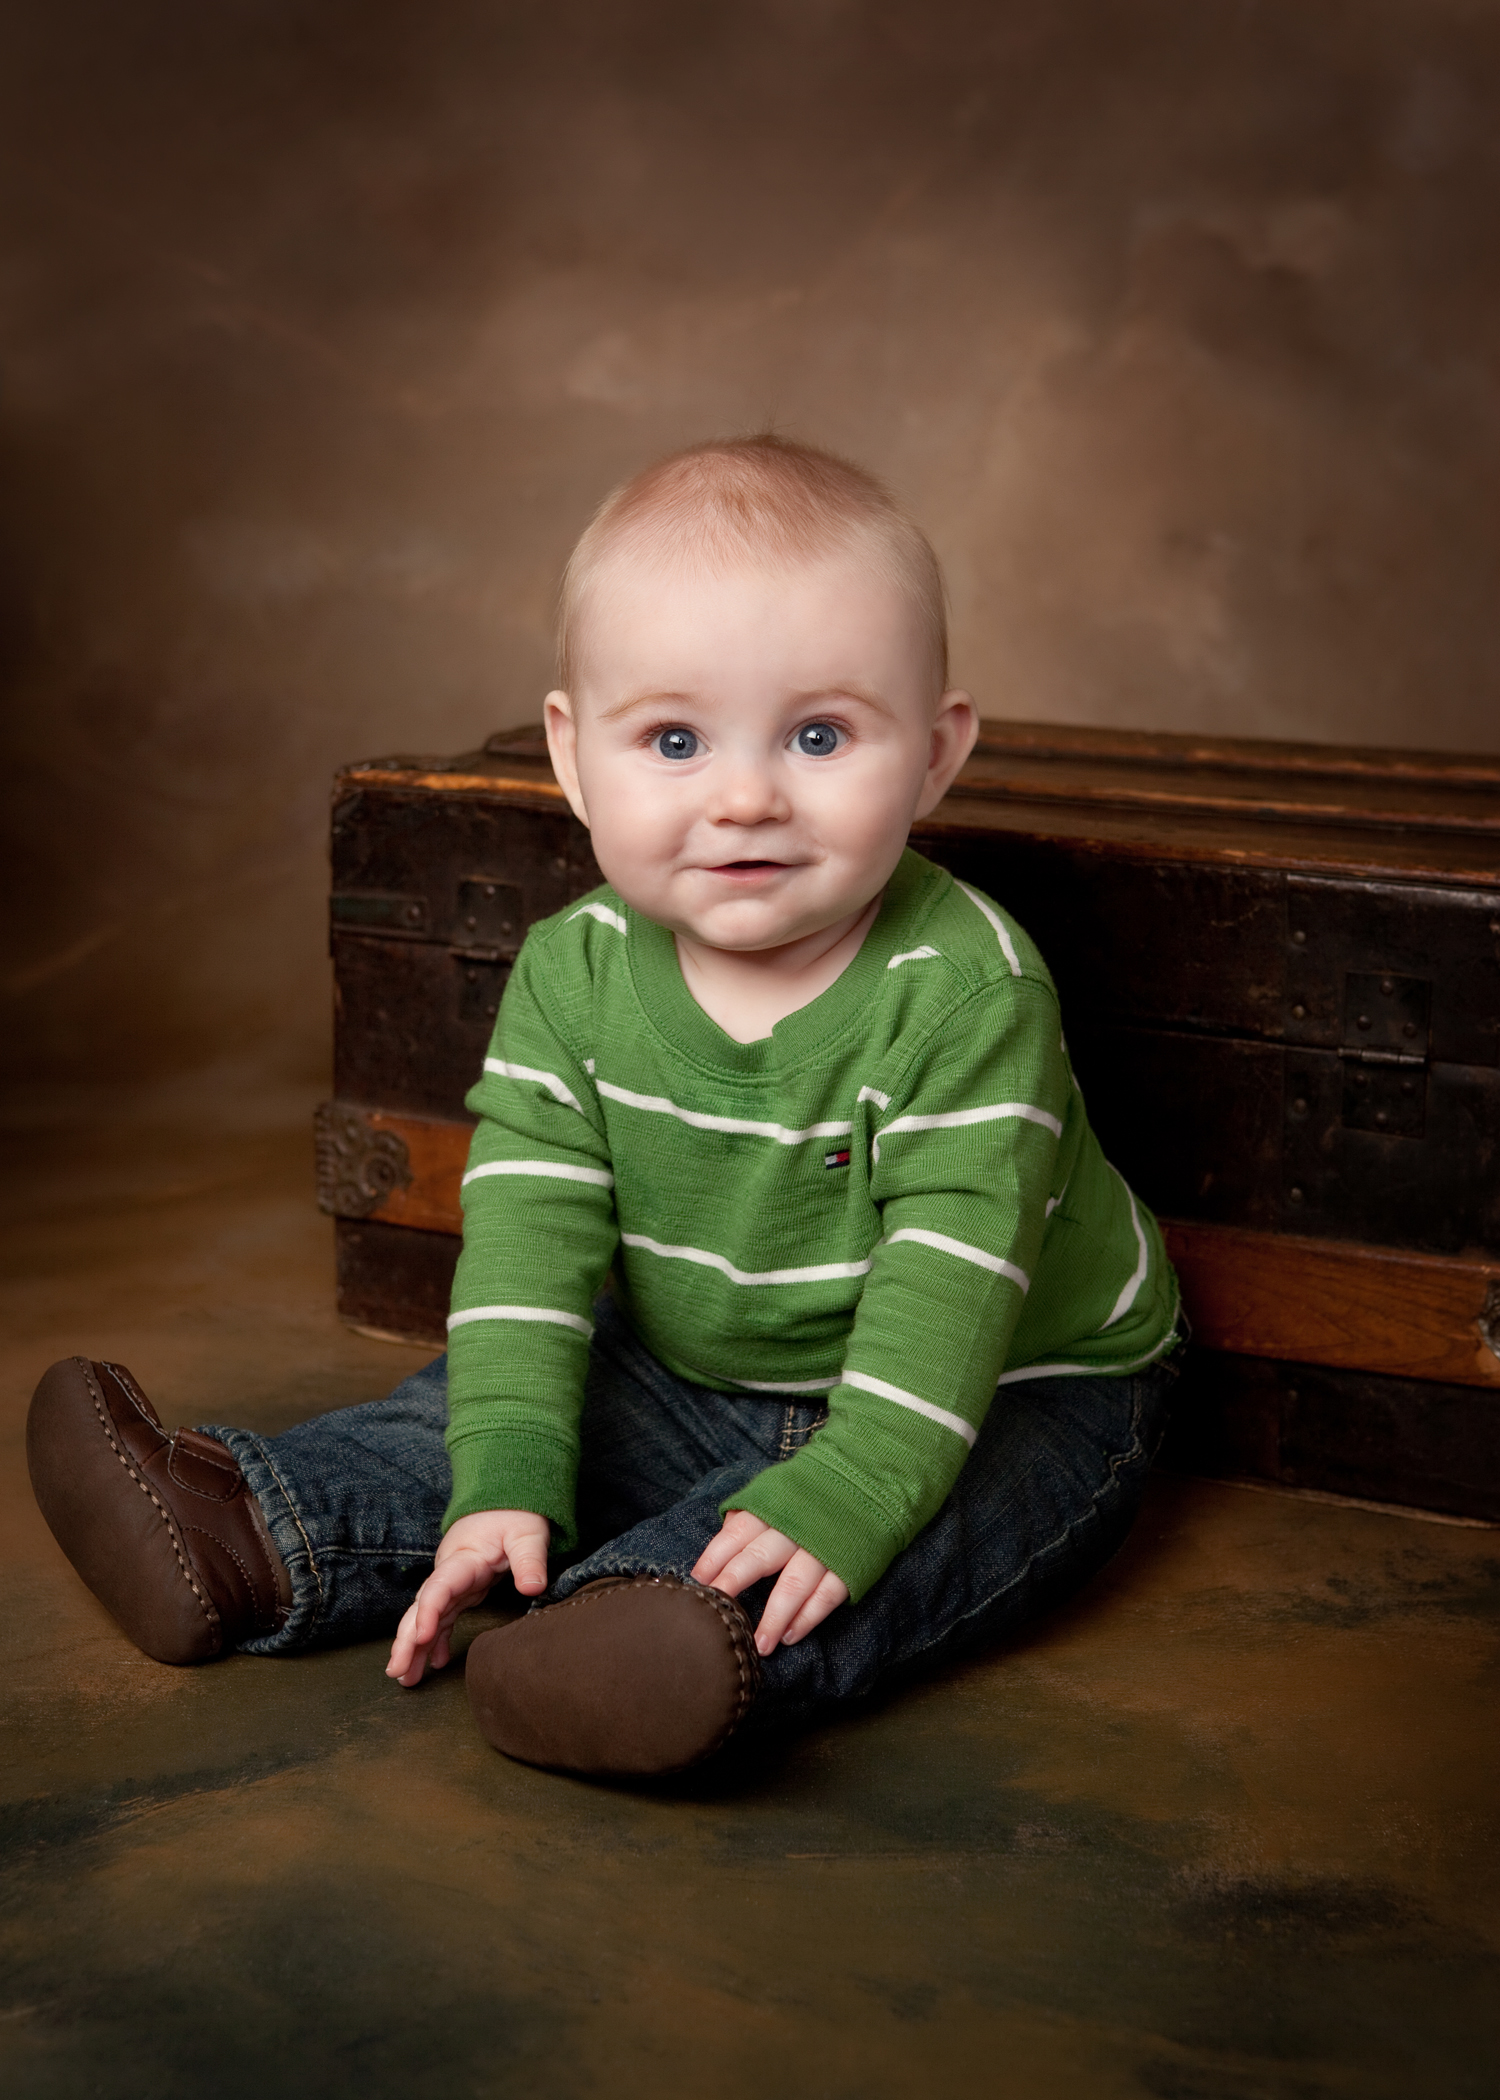 Smiling baby boy in green shirt sitting in front of and old wooden chest